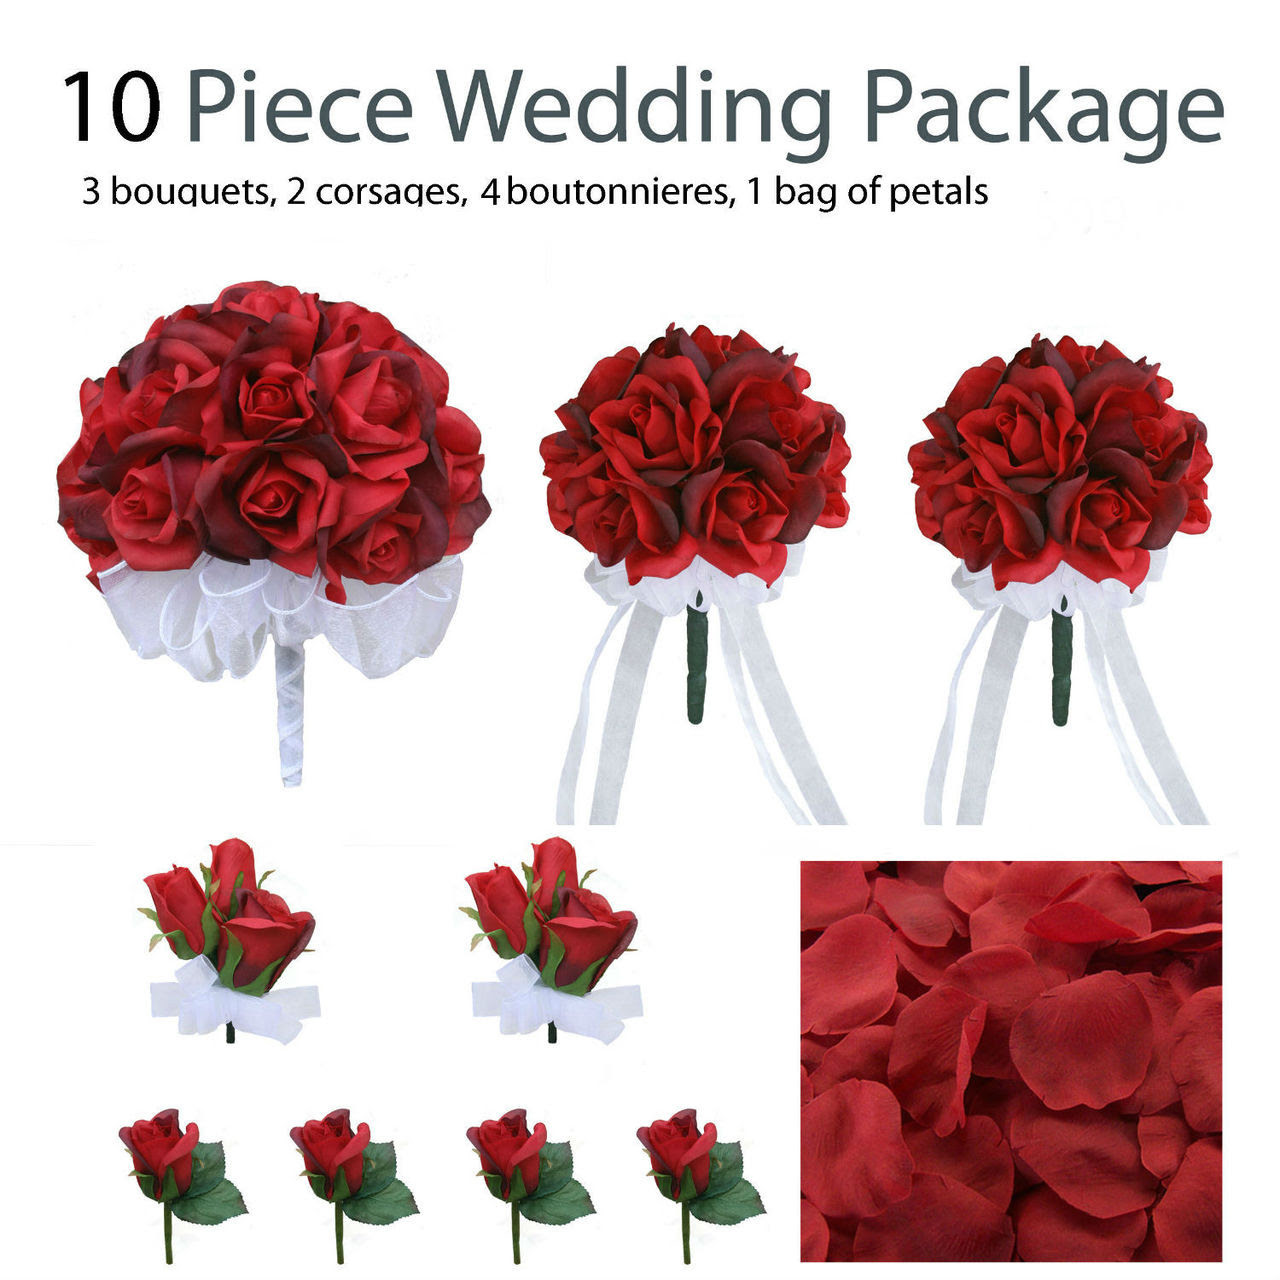 10 Piece Red Silk Wedding Flower Package  Red Rose Silk Flower Bridal Bouquets Destination